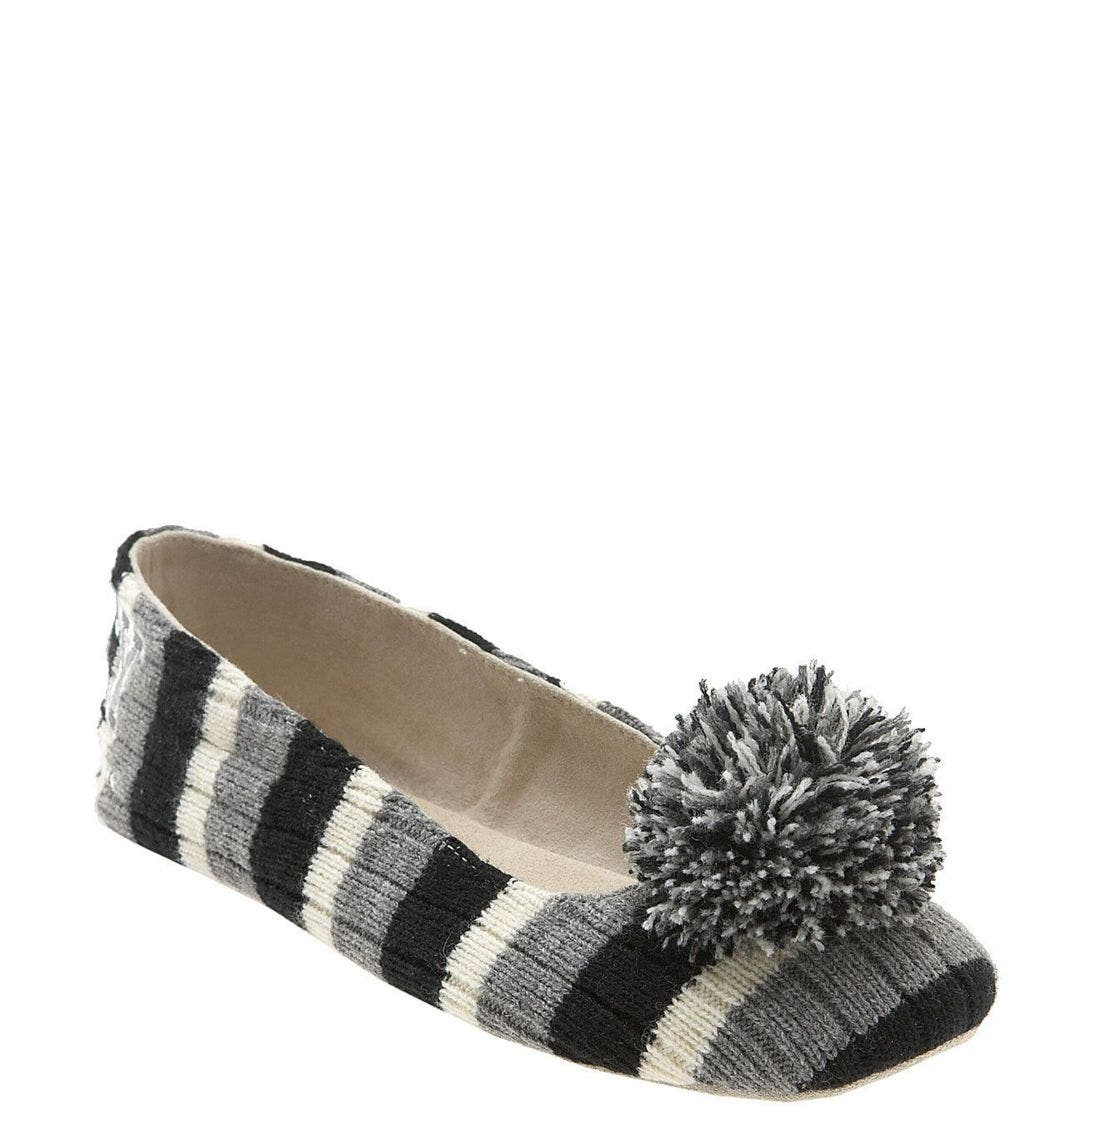 Main Image - Juicy Couture 'Cheer' Flat